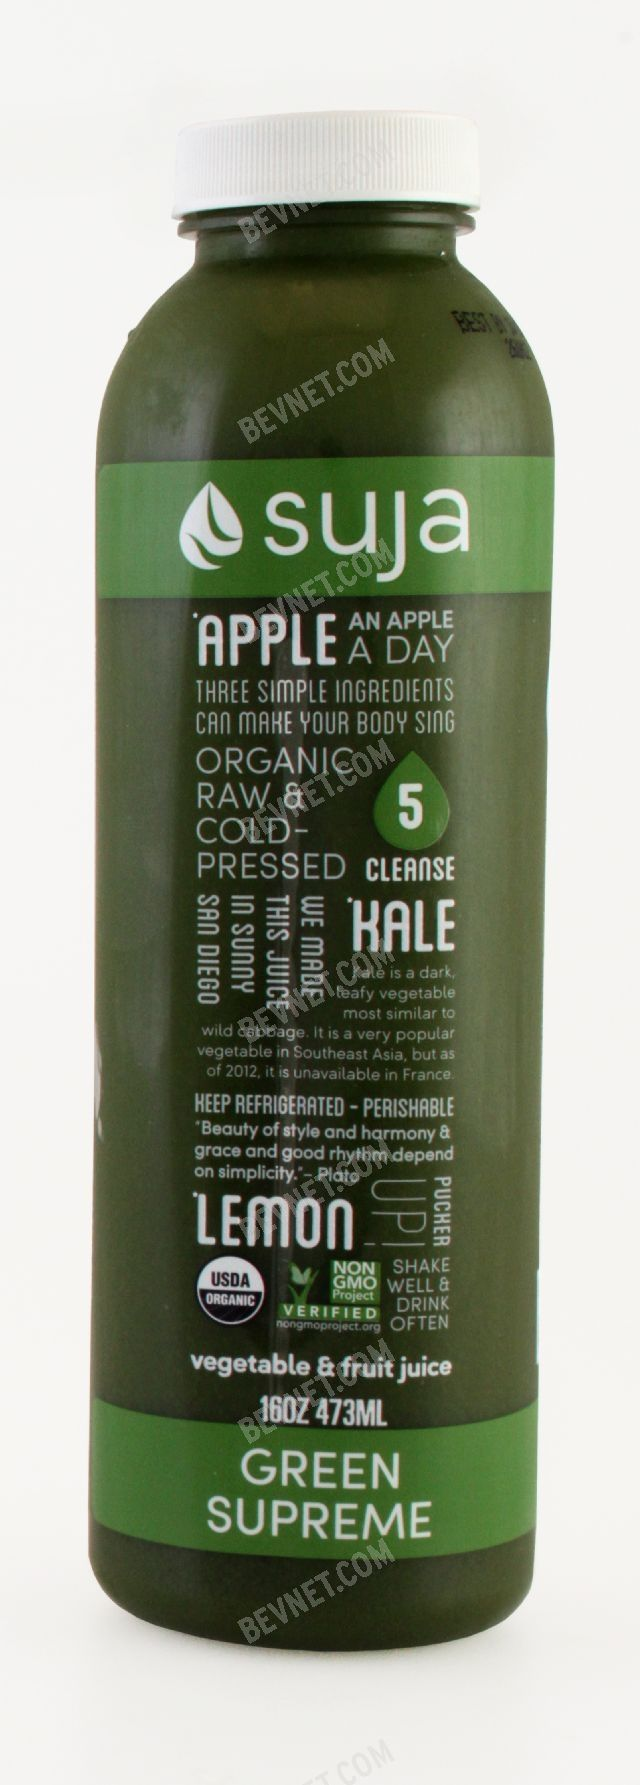 Green Supreme Suja Classic Bevnet Com Product Review